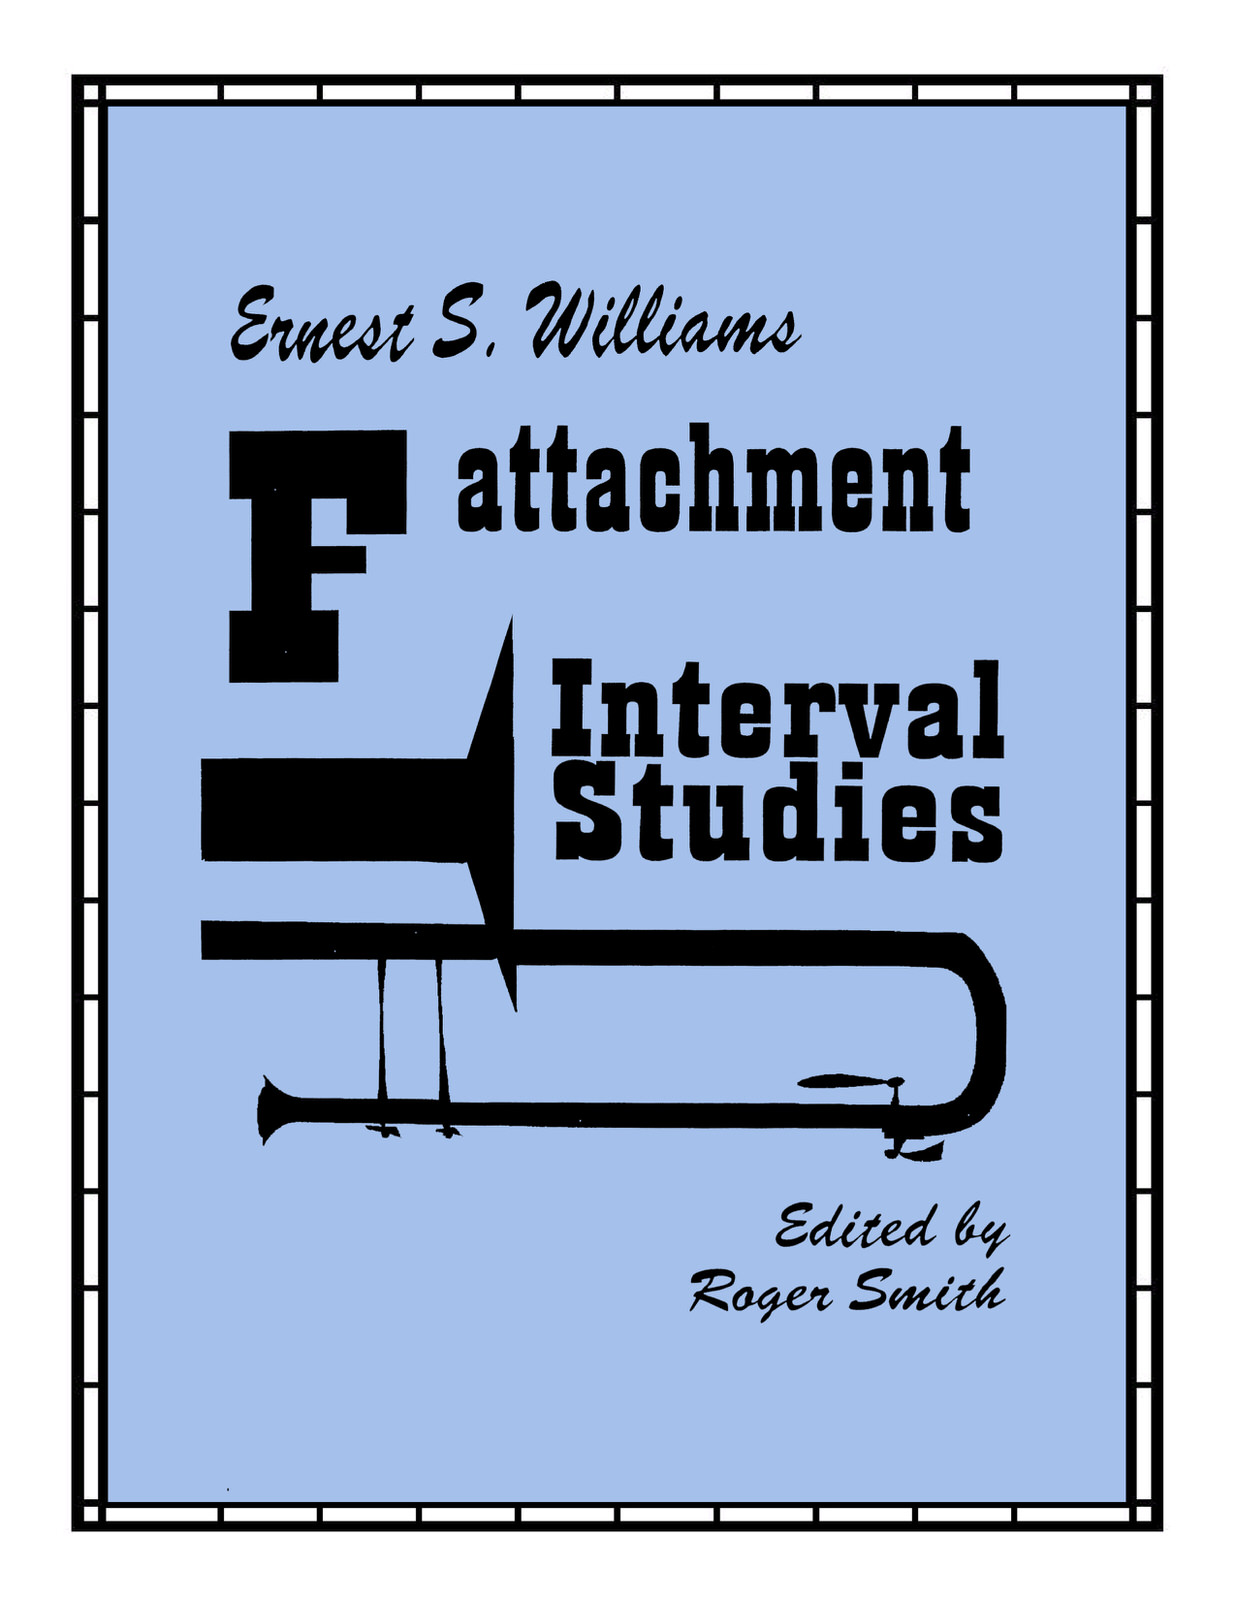 Williams F Attachment Intervals f attachment interval studies by williams, ernest s qpress